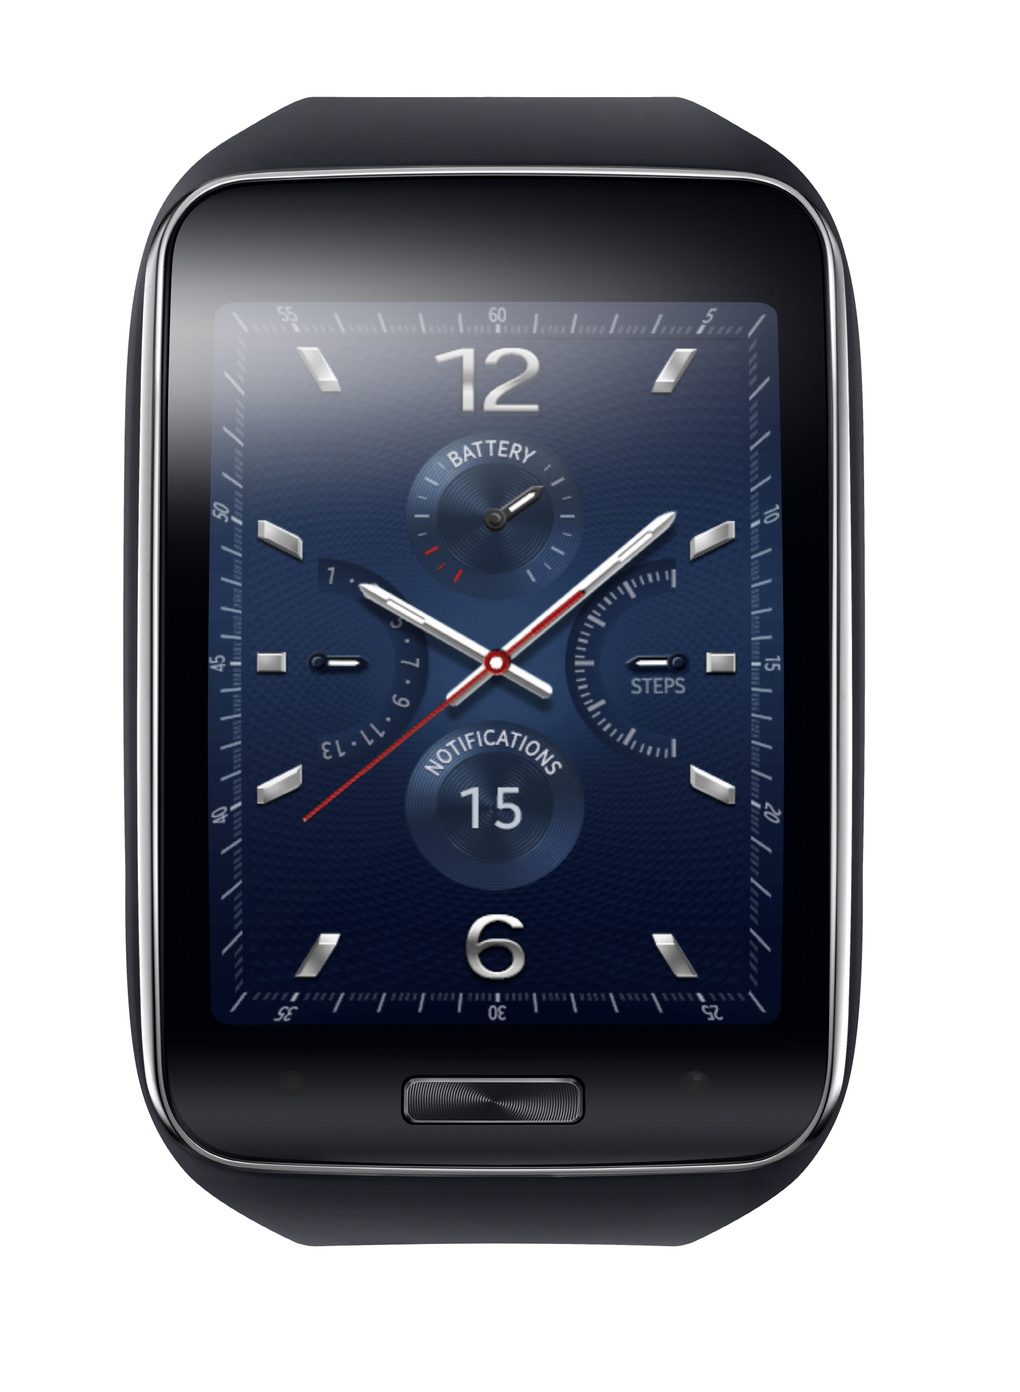 Samsung_Gear_S_Blue_Black_1_verge_super_wide